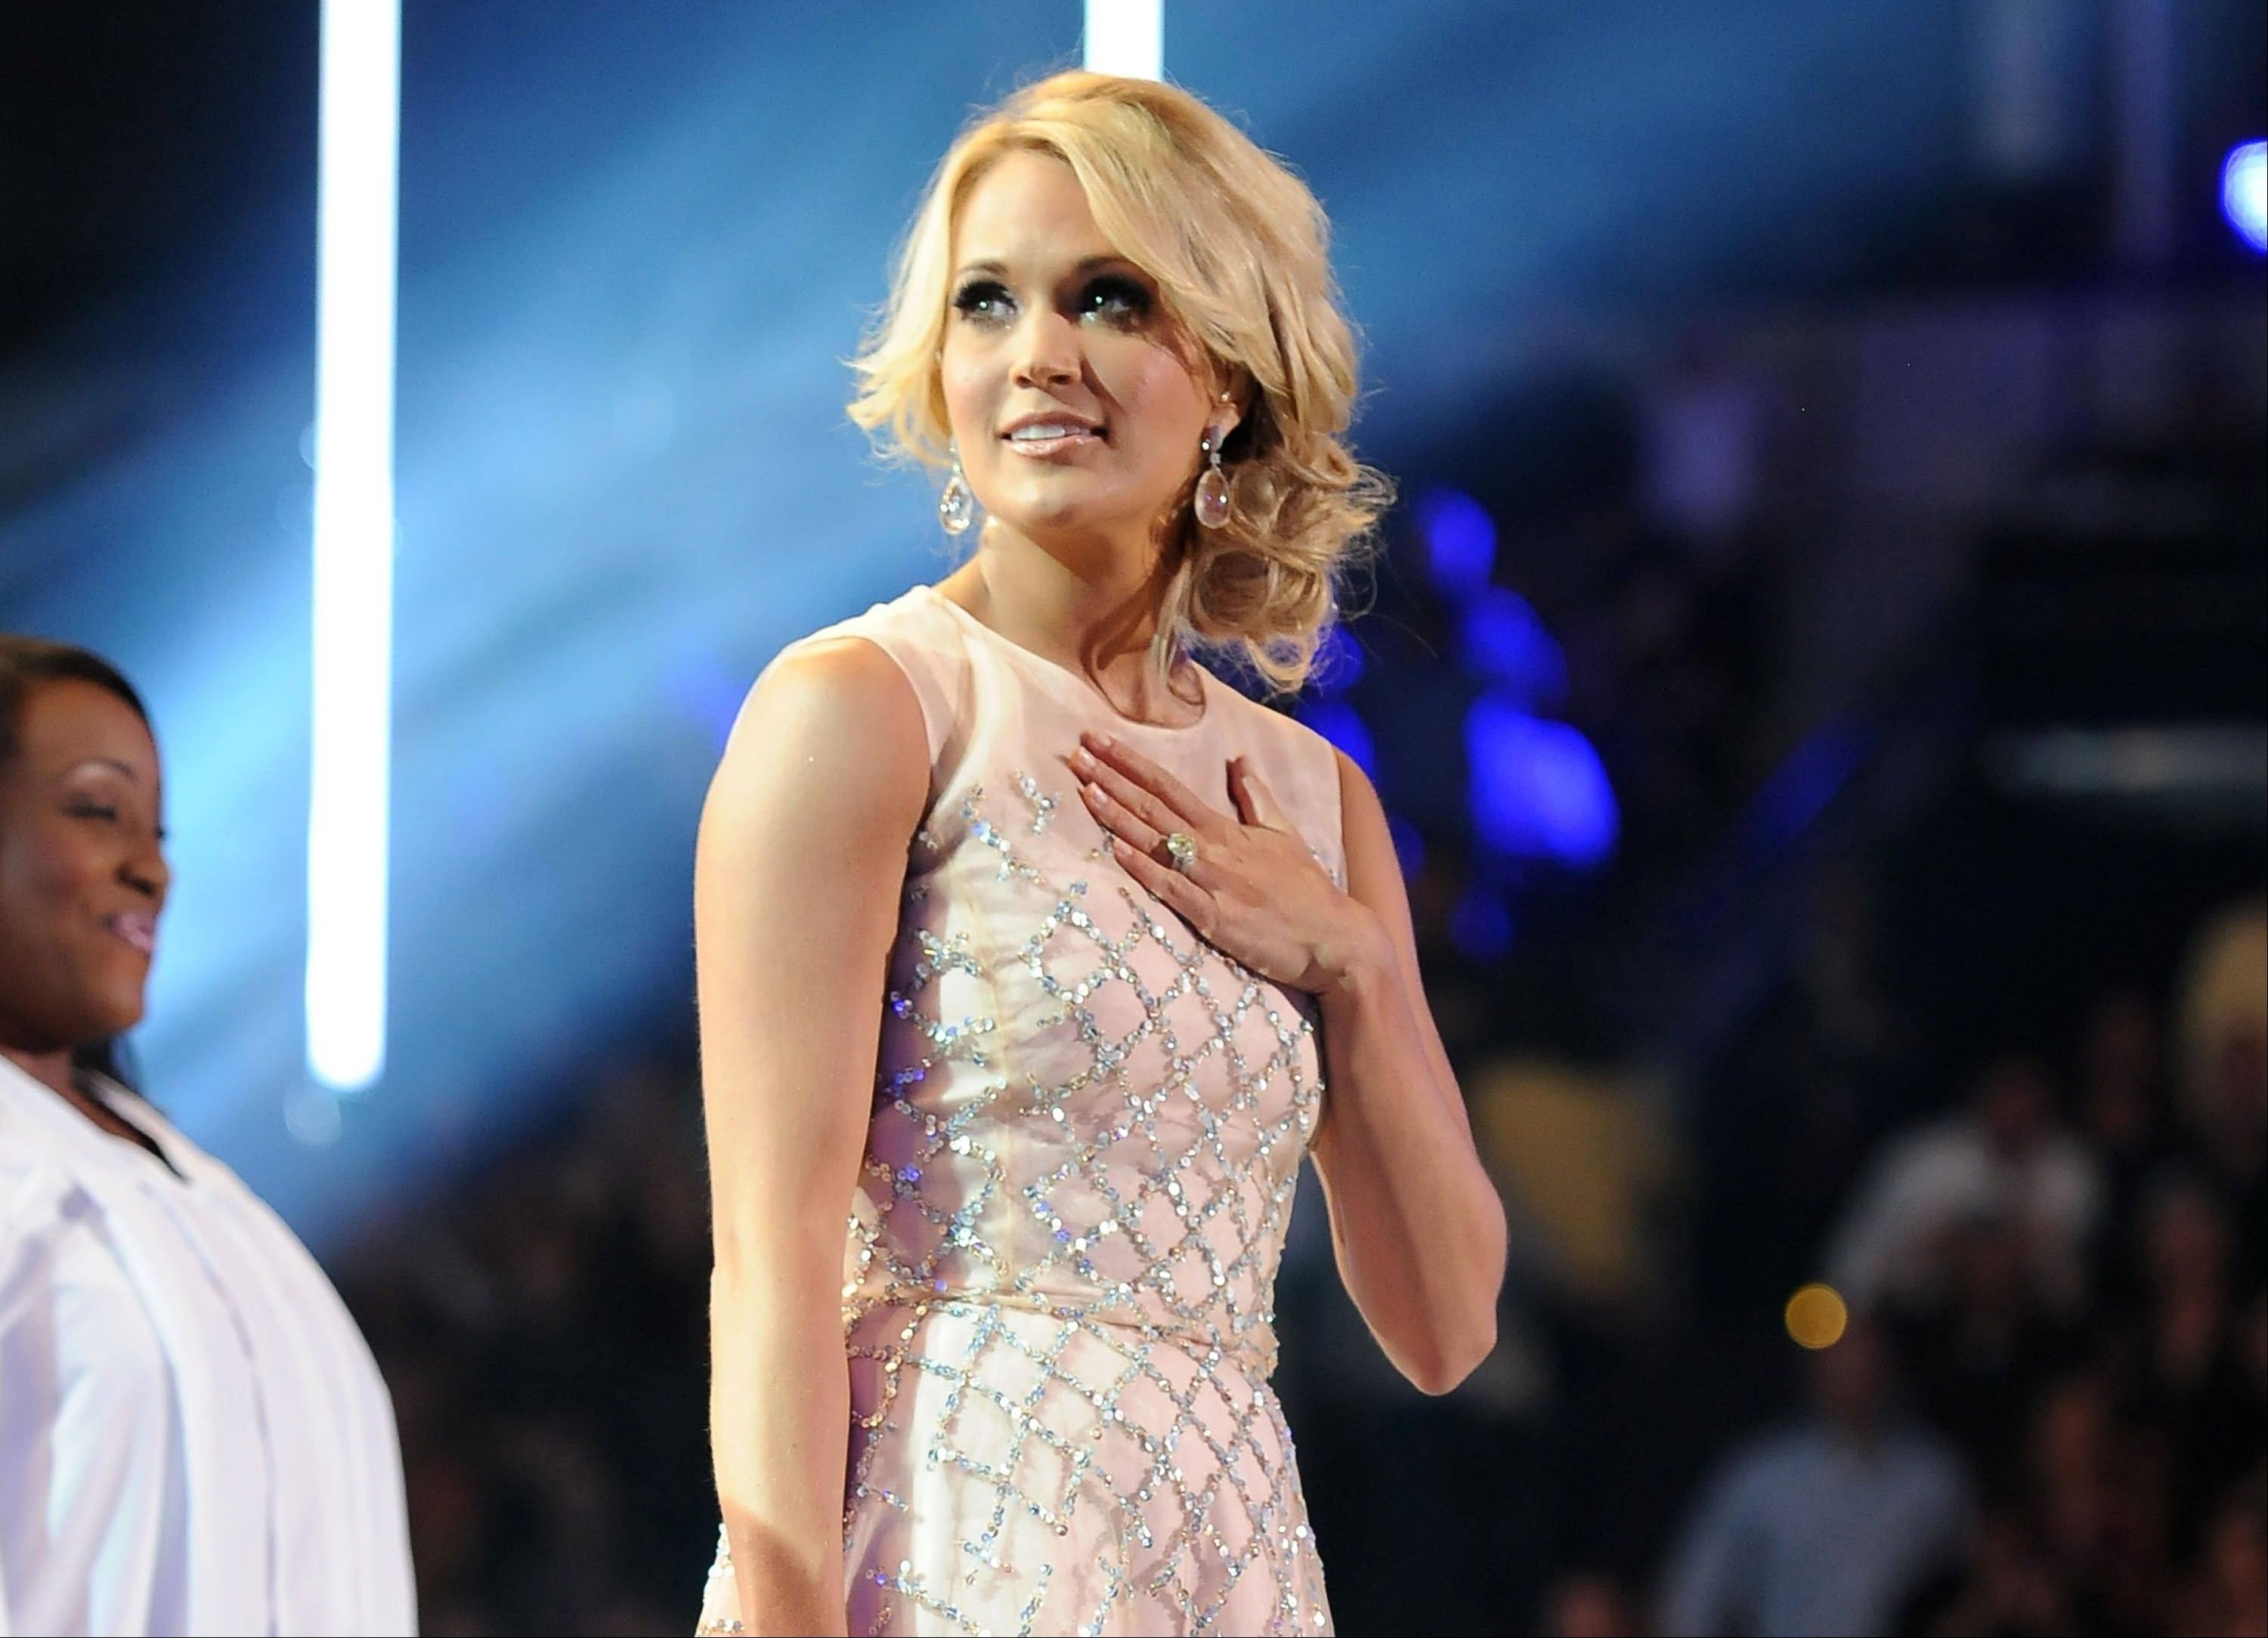 Carrie Underwood used Twitter to oppose the �Ag Gag� bill that opponents claimed would have stopped investigation into animal abuse on farms in Tennessee, reaching out directly to Gov. Bill Haslam with a boldly worded message saying if he signed it �he needs to expect me at his front door.�